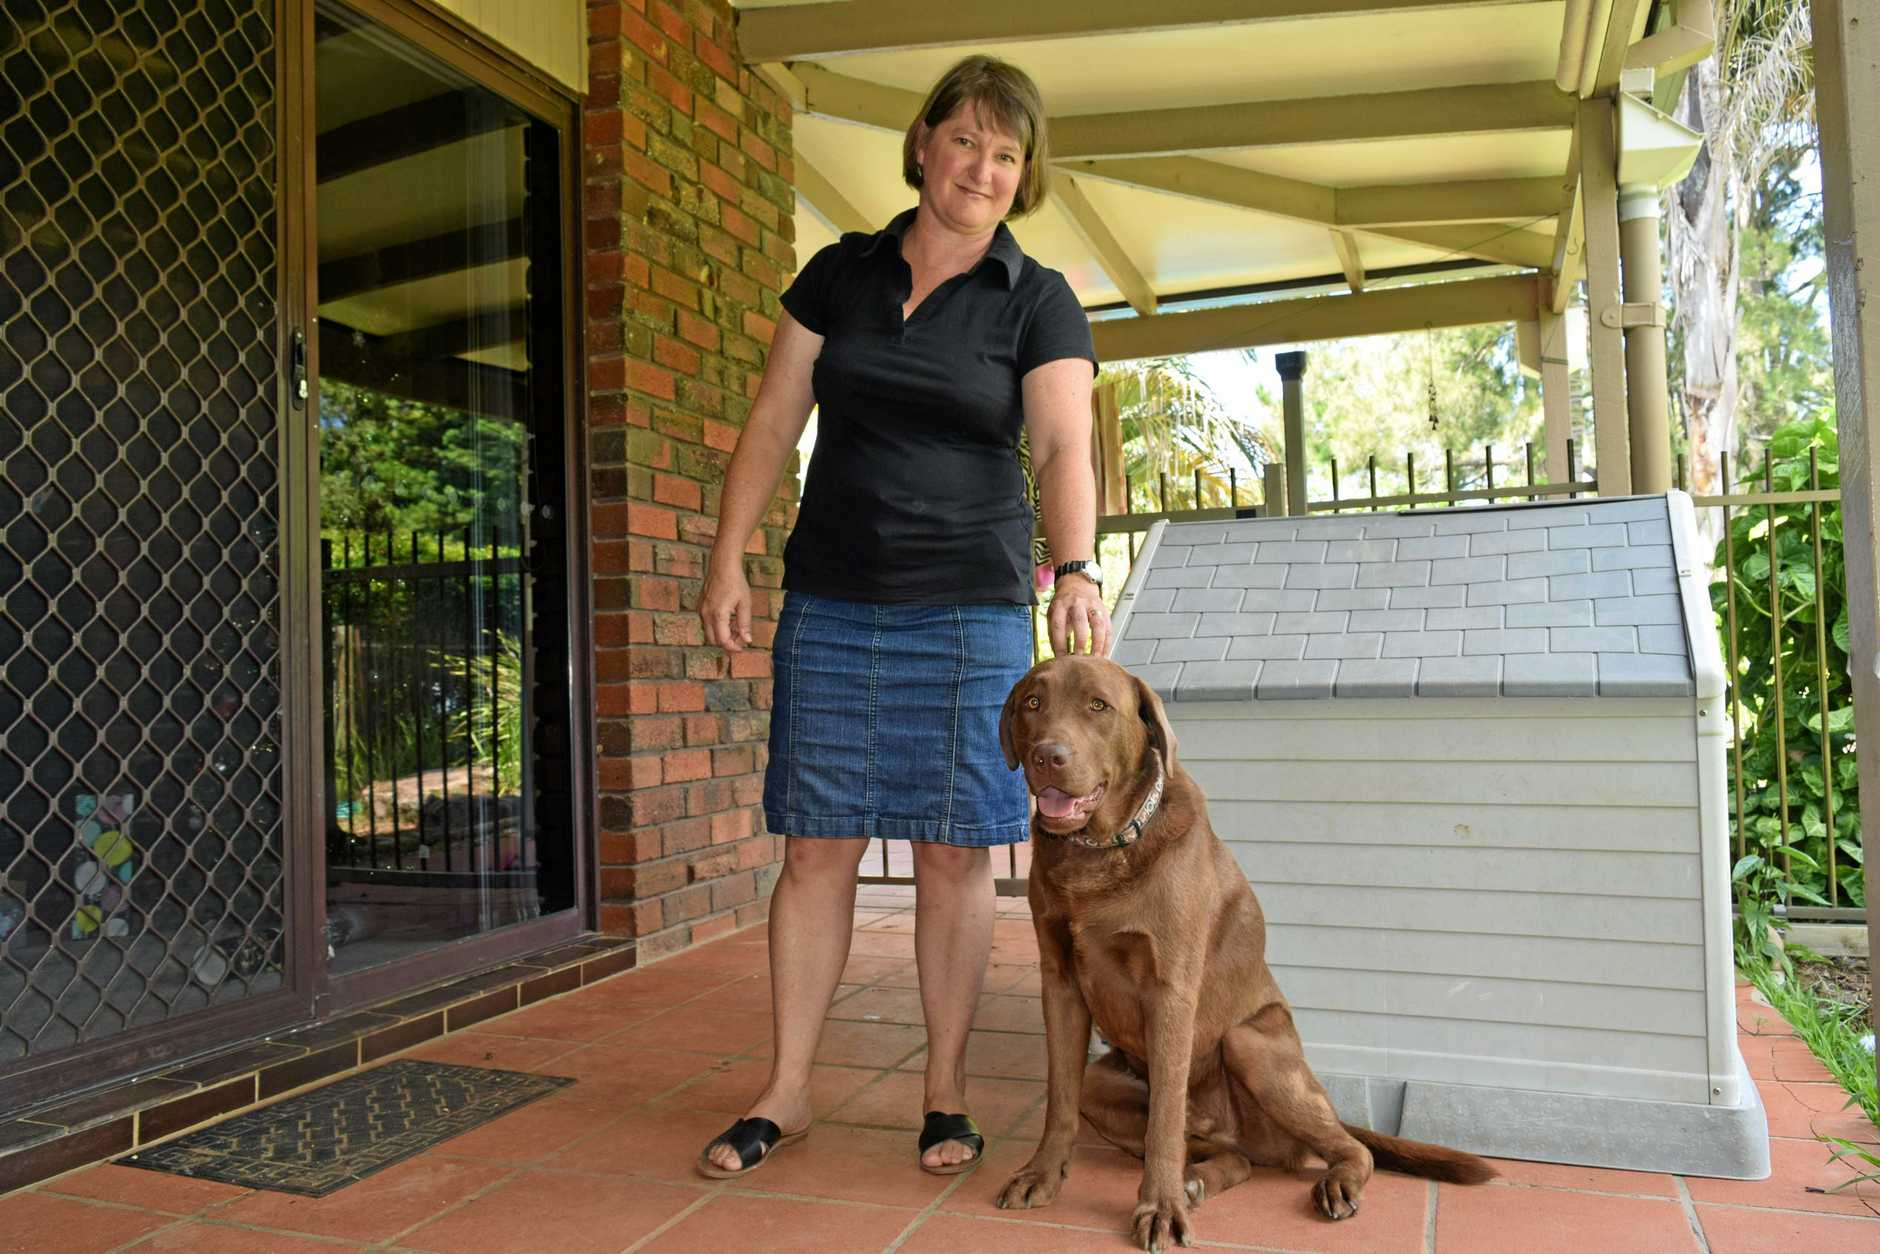 FAMILY MOVE: Libby Crispin, with dog Benji, will soon be moving to the Northern Rivers but has found finding a rental property next to impossible.